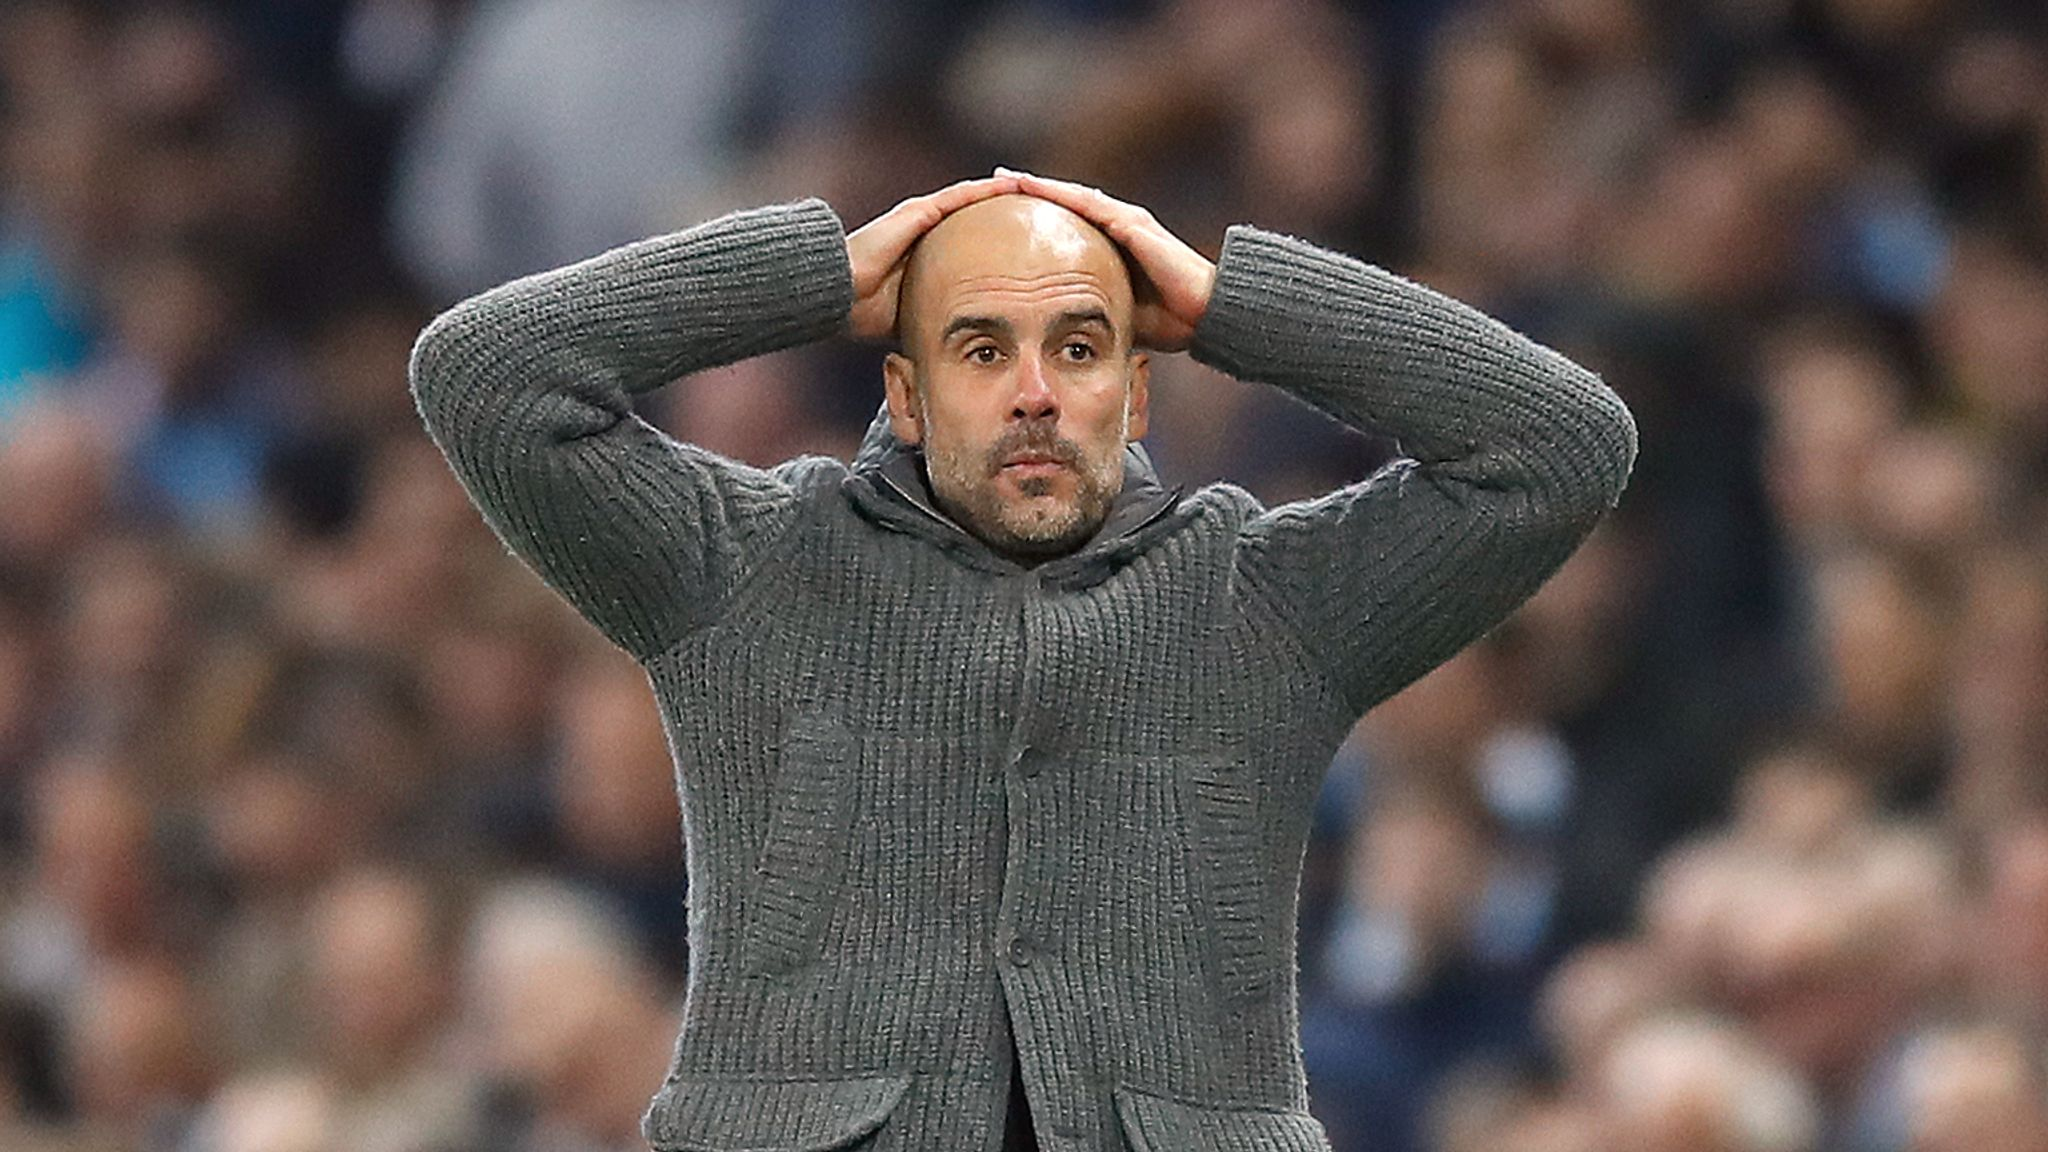 Pep Guardiola says Manchester City's defeat to Tottenham will 'hurt